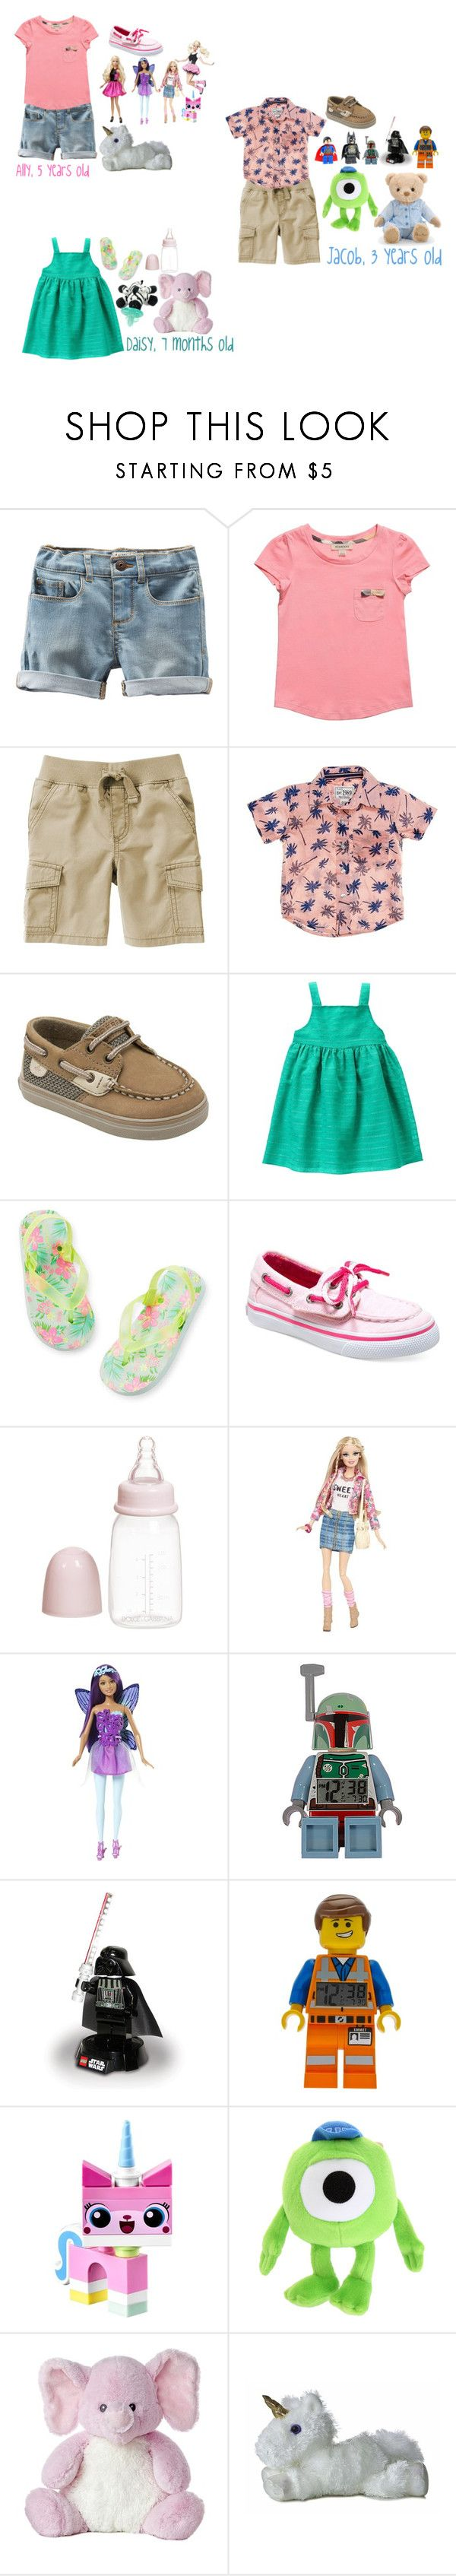 """""""Summer fun"""" by lily-sterl ❤ liked on Polyvore featuring beauty, Burberry, Gymboree, Sperry, Carter's, Dolce&Gabbana, Hot Topic, Lego, WubbaNub and Disney"""